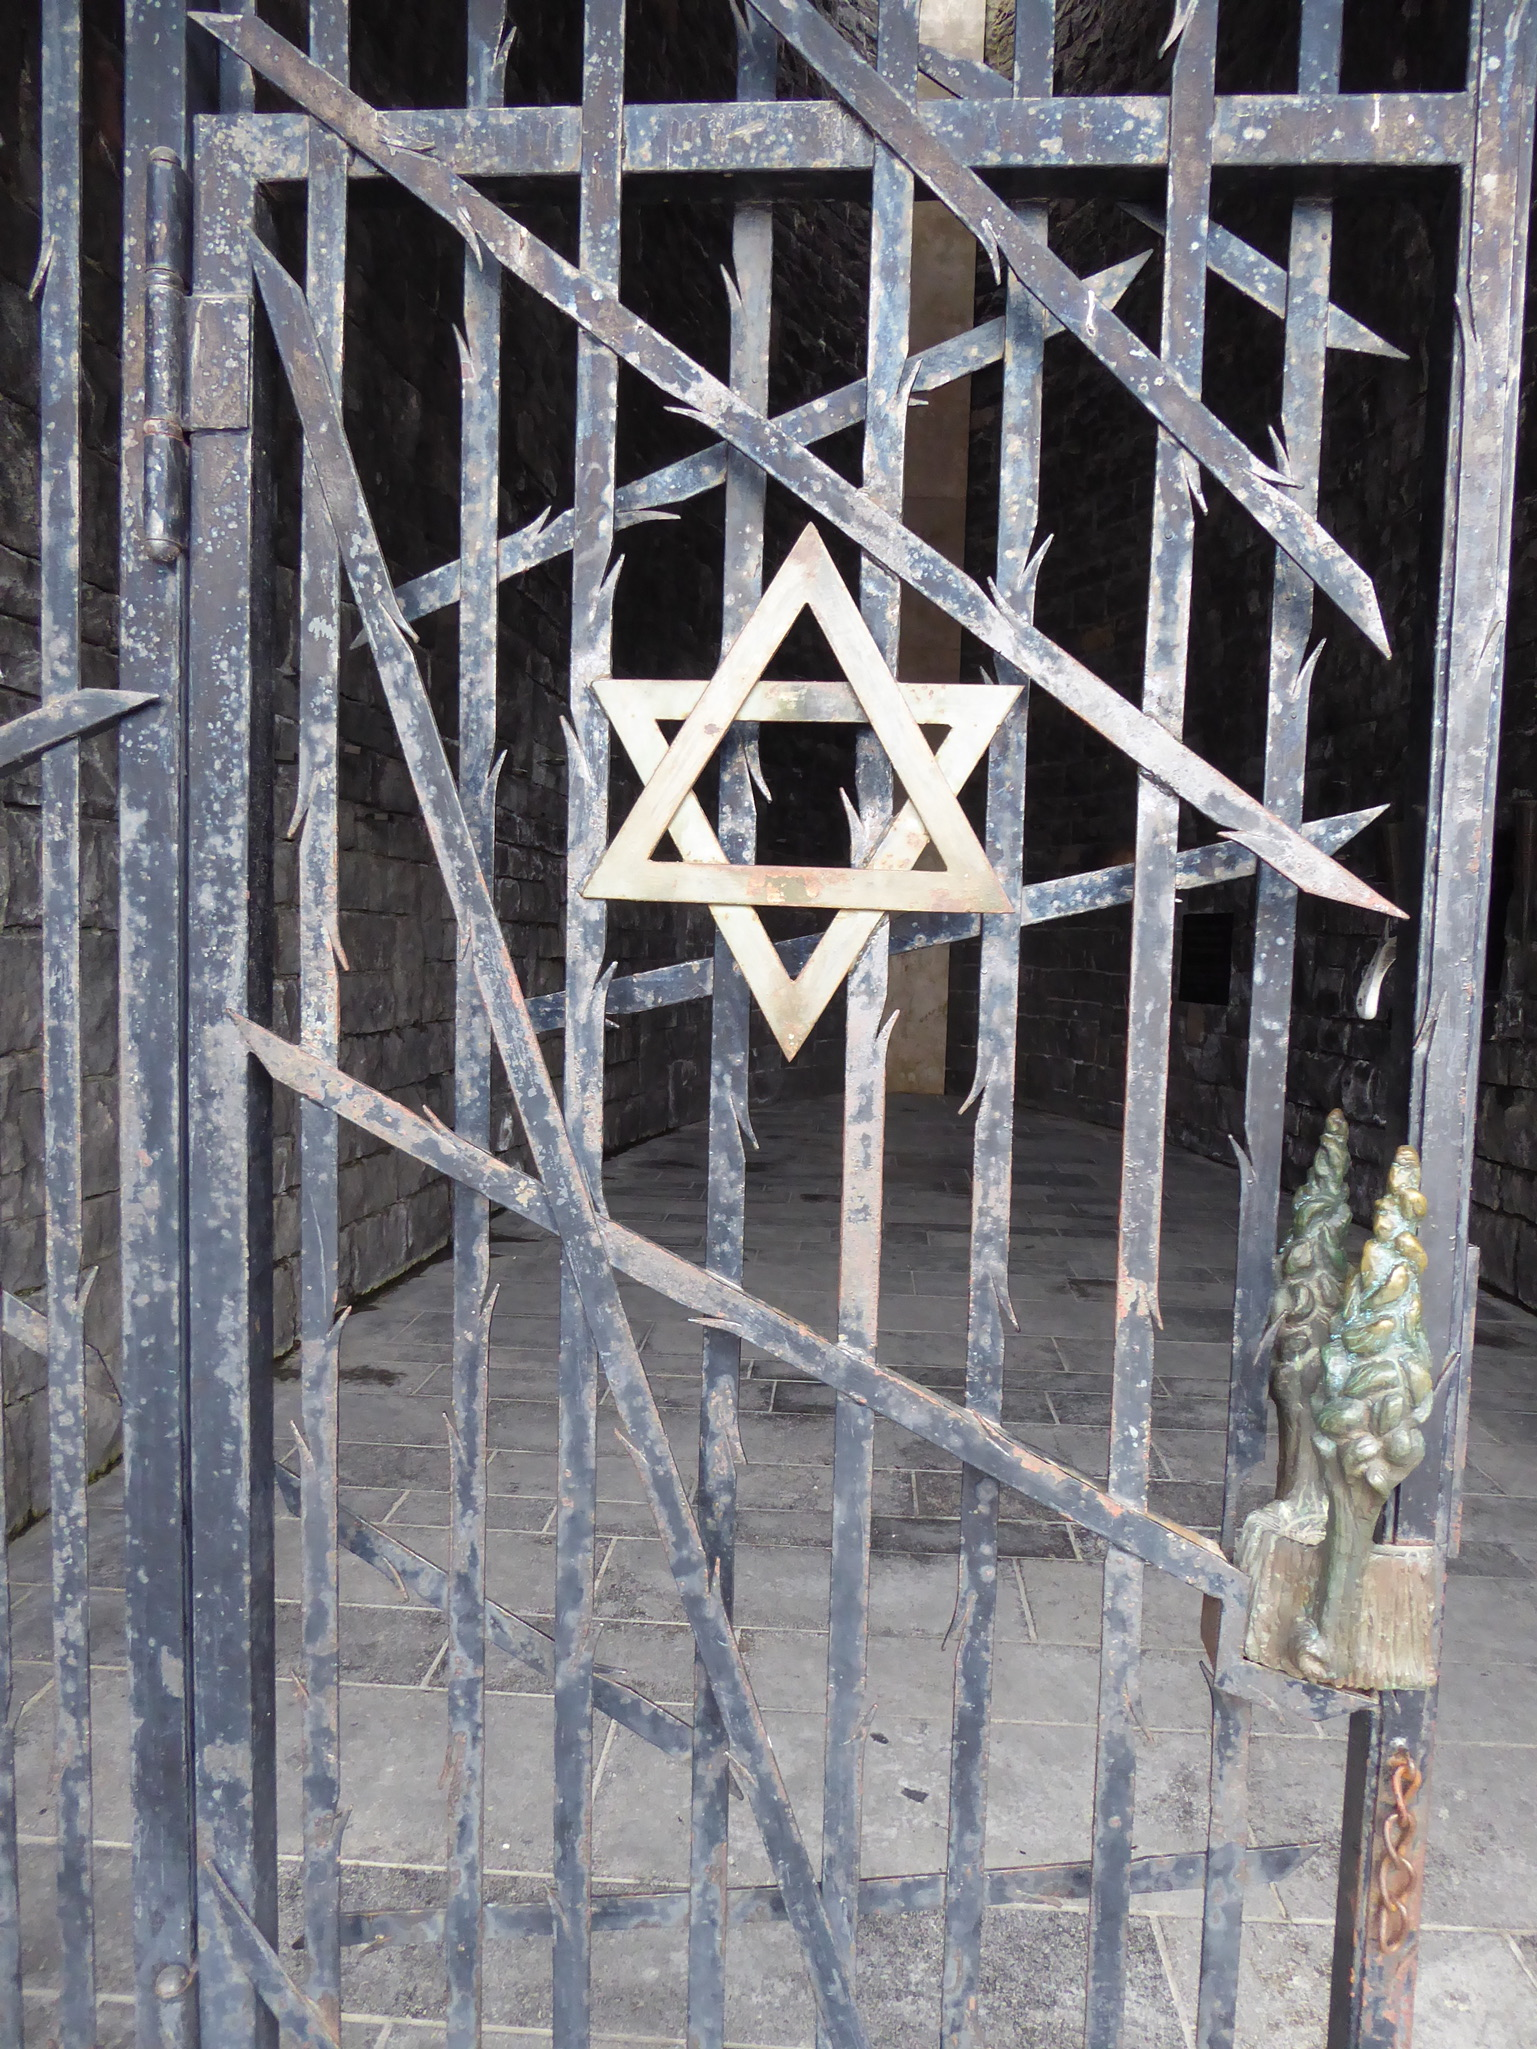 Gate of the Jewish memorial at Dachau.